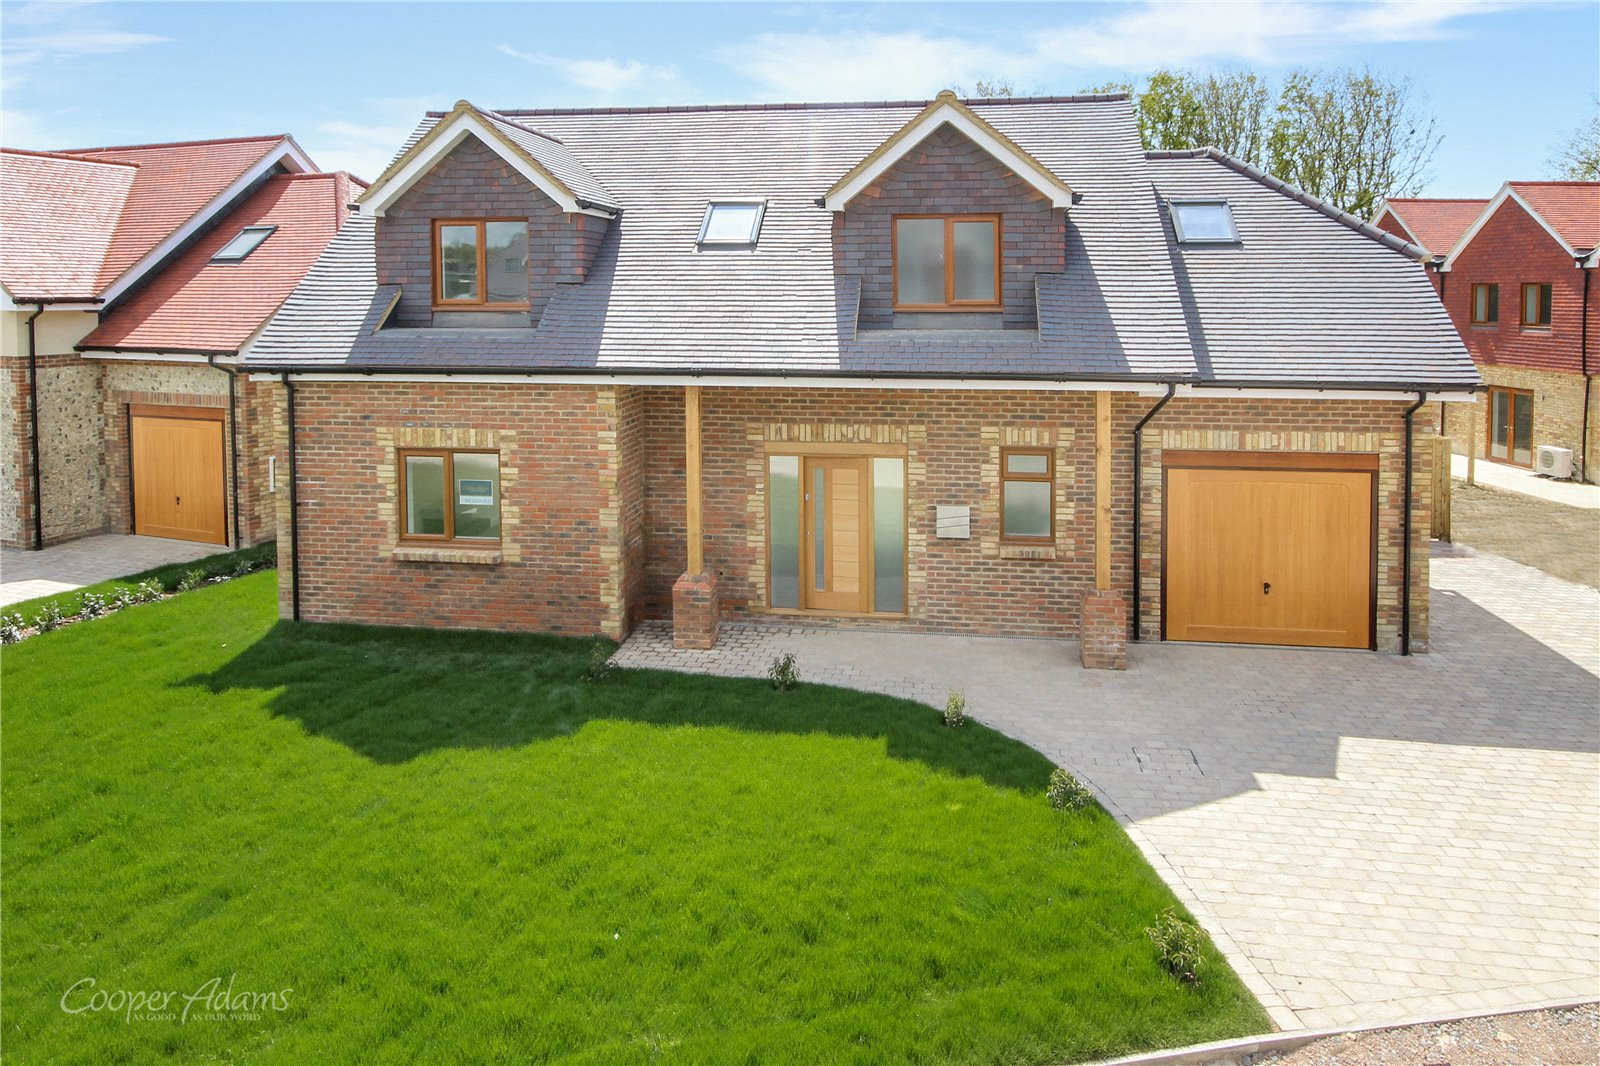 3 bed house for sale in Swallows Gate, Dappers Lane, Angmering, BN16